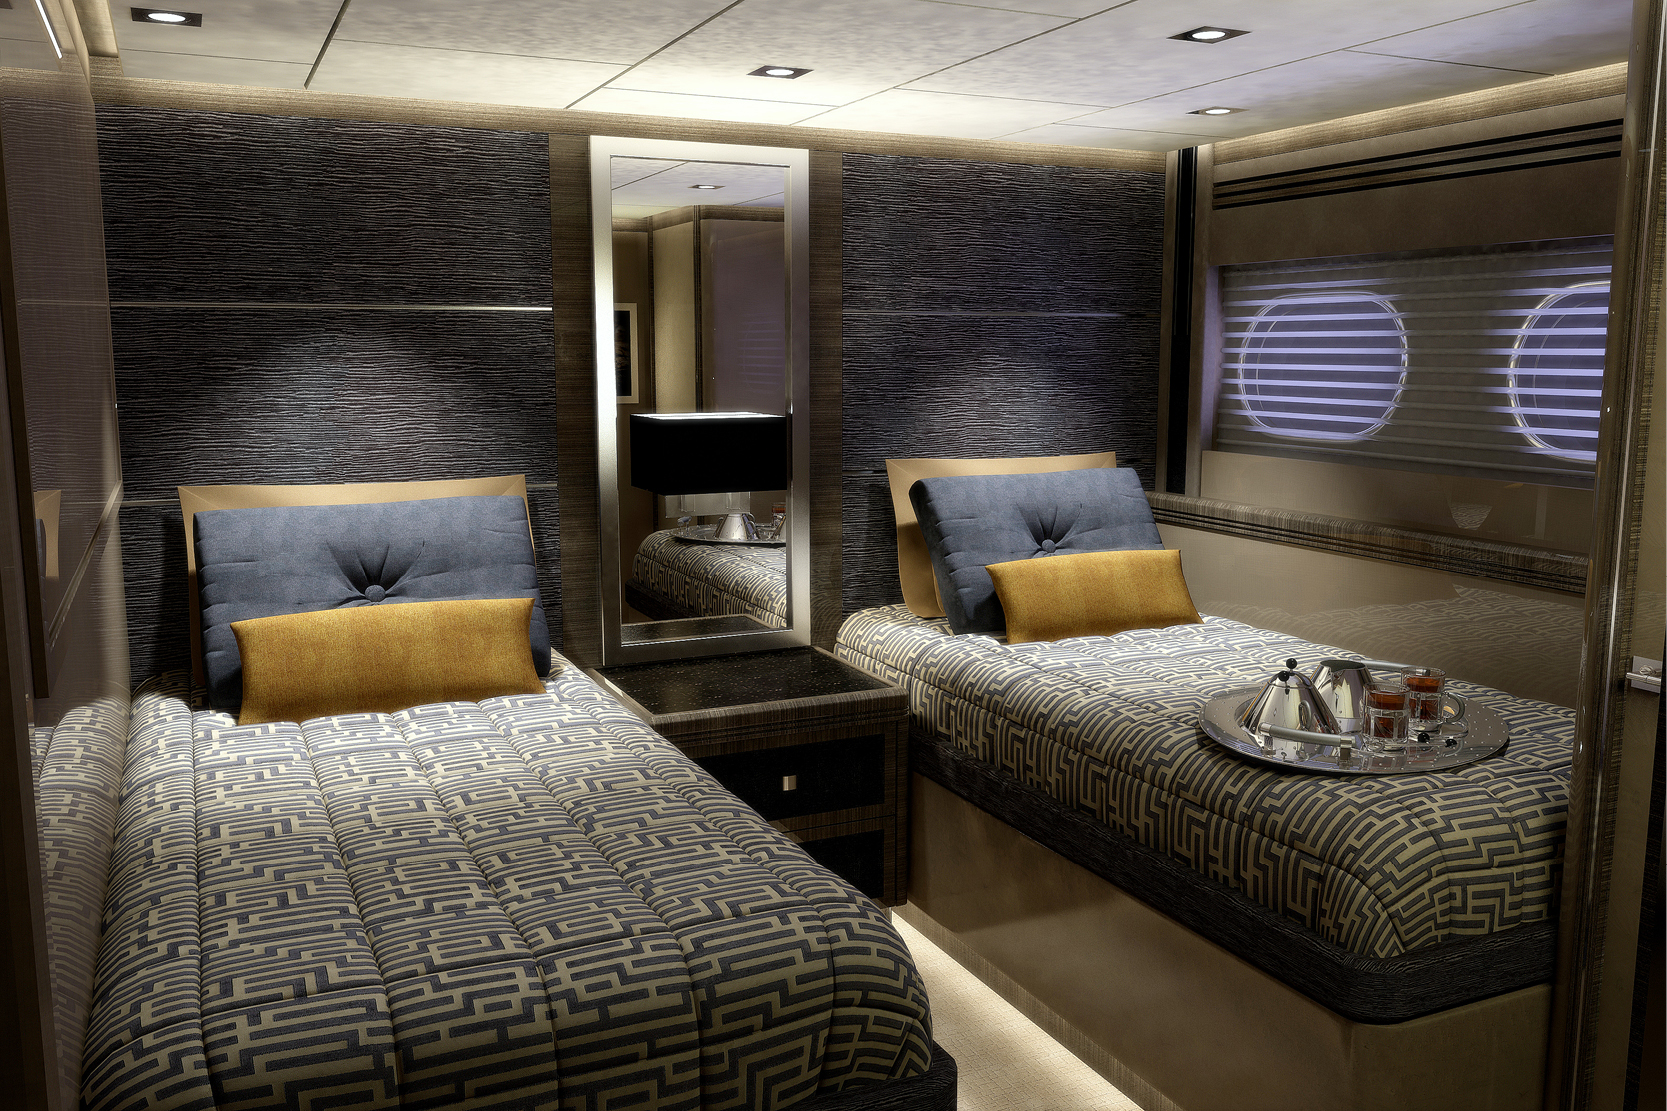 Interior-Design-167'-Trinity-Motoryacht-Reem-Twin-Bedroom.jpeg